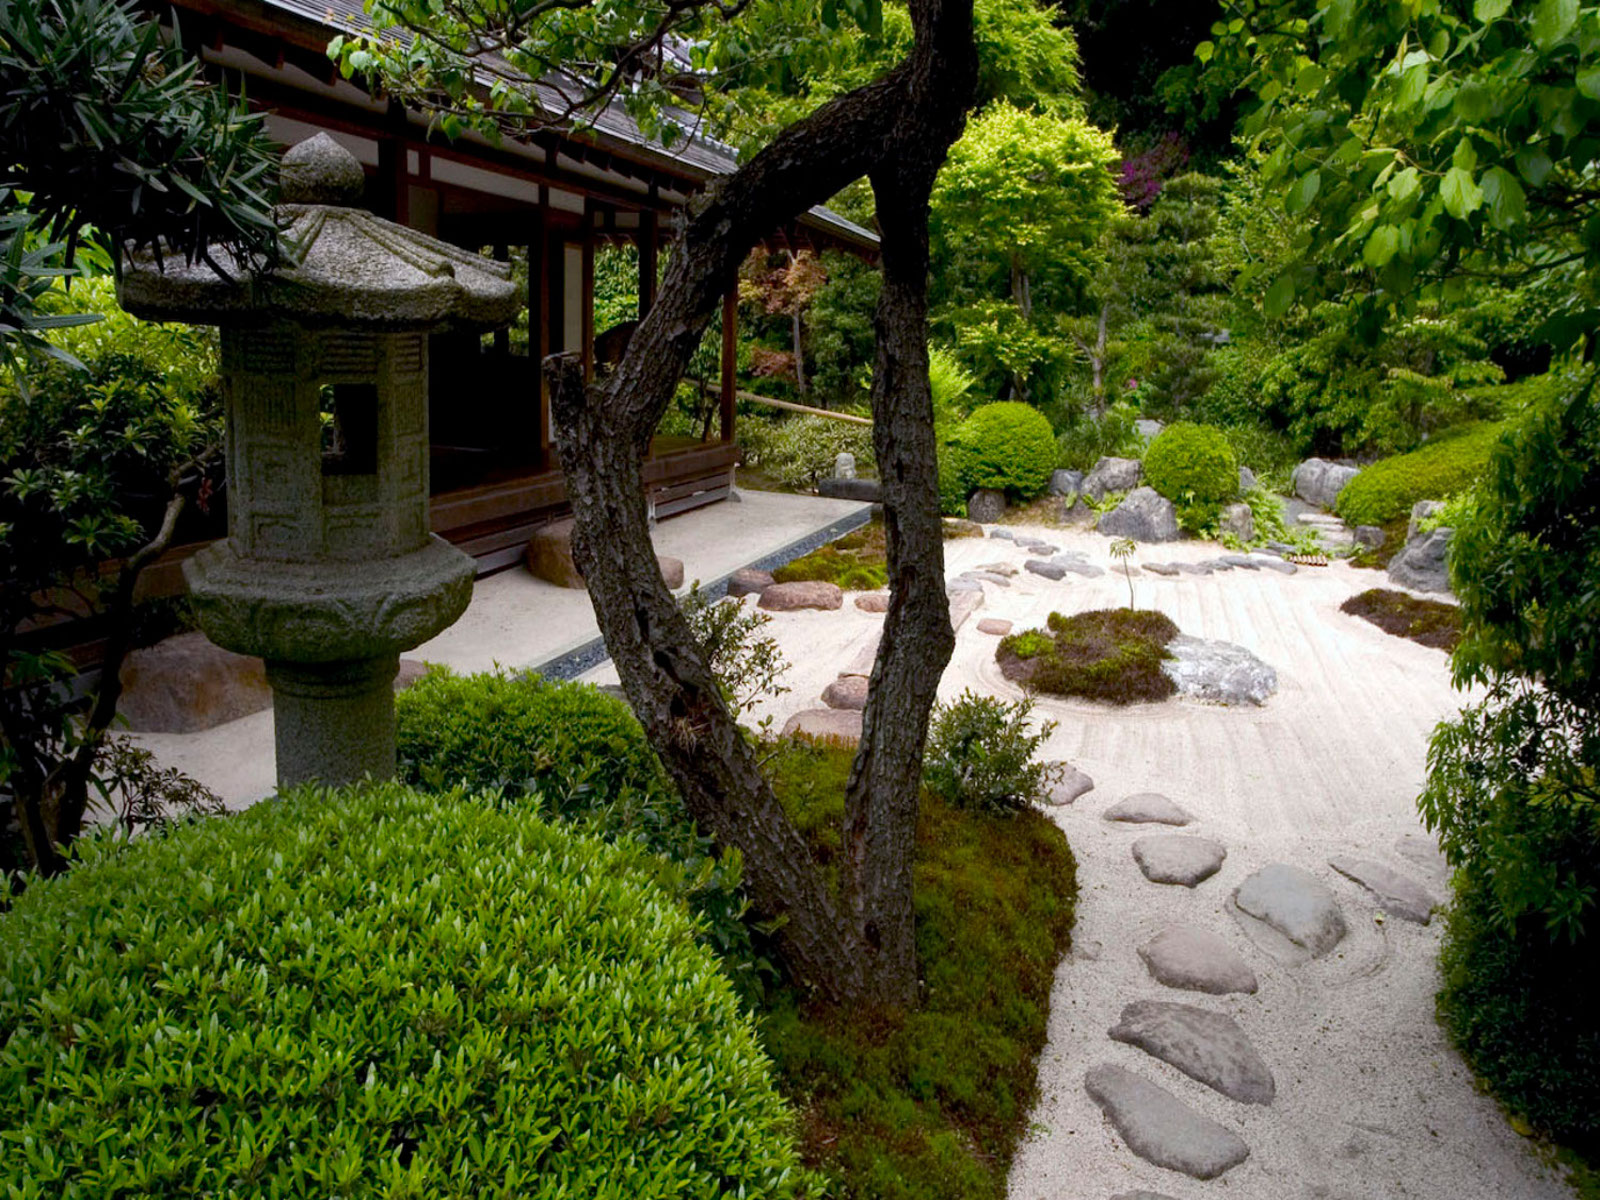 Zen garden wallpaper hd wallpaper pictures gallery for Japanese meditation garden design